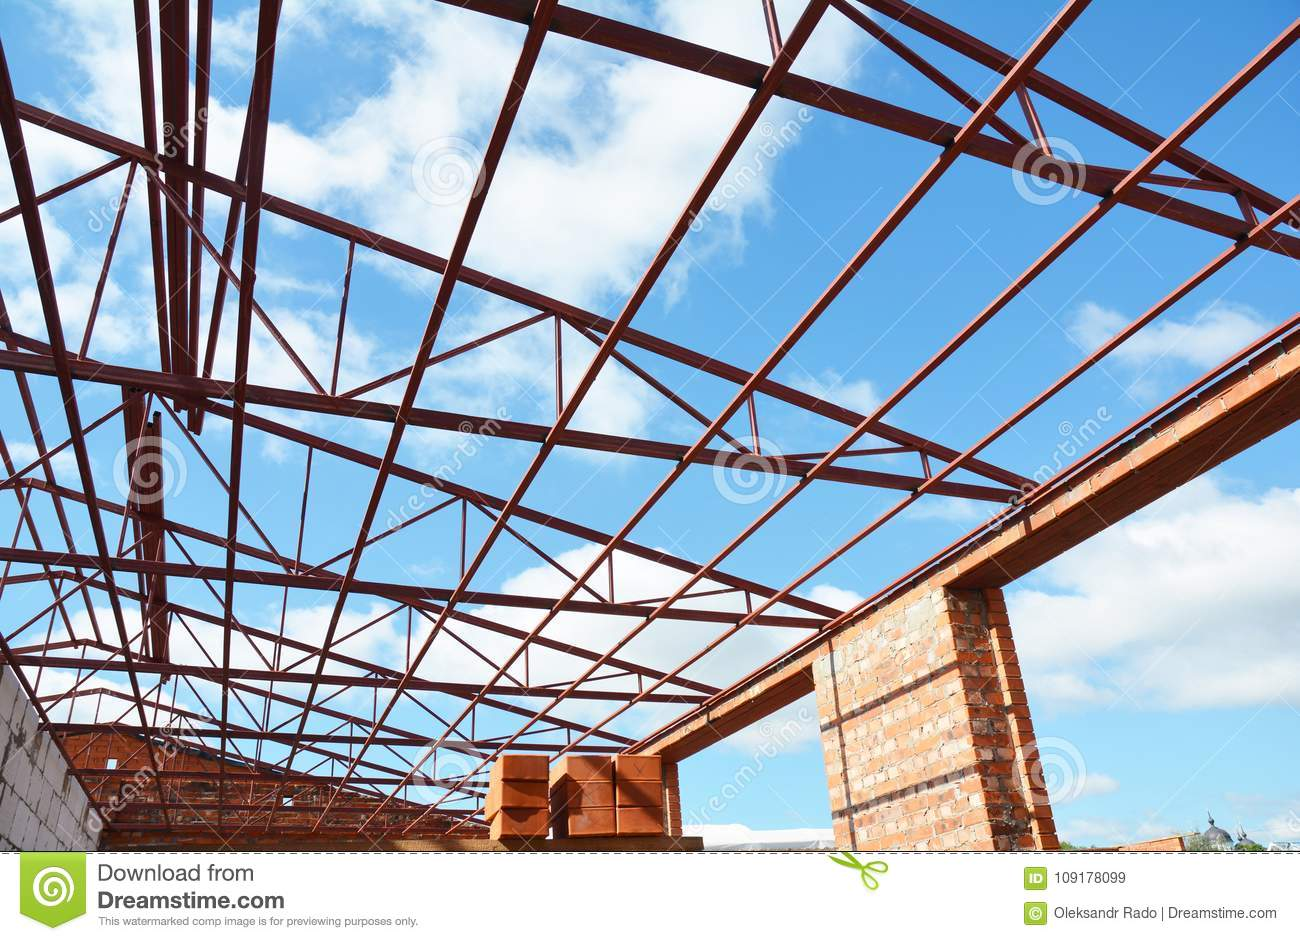 Steel roof trusses stock photos royalty free pictures for Roof trusses prices